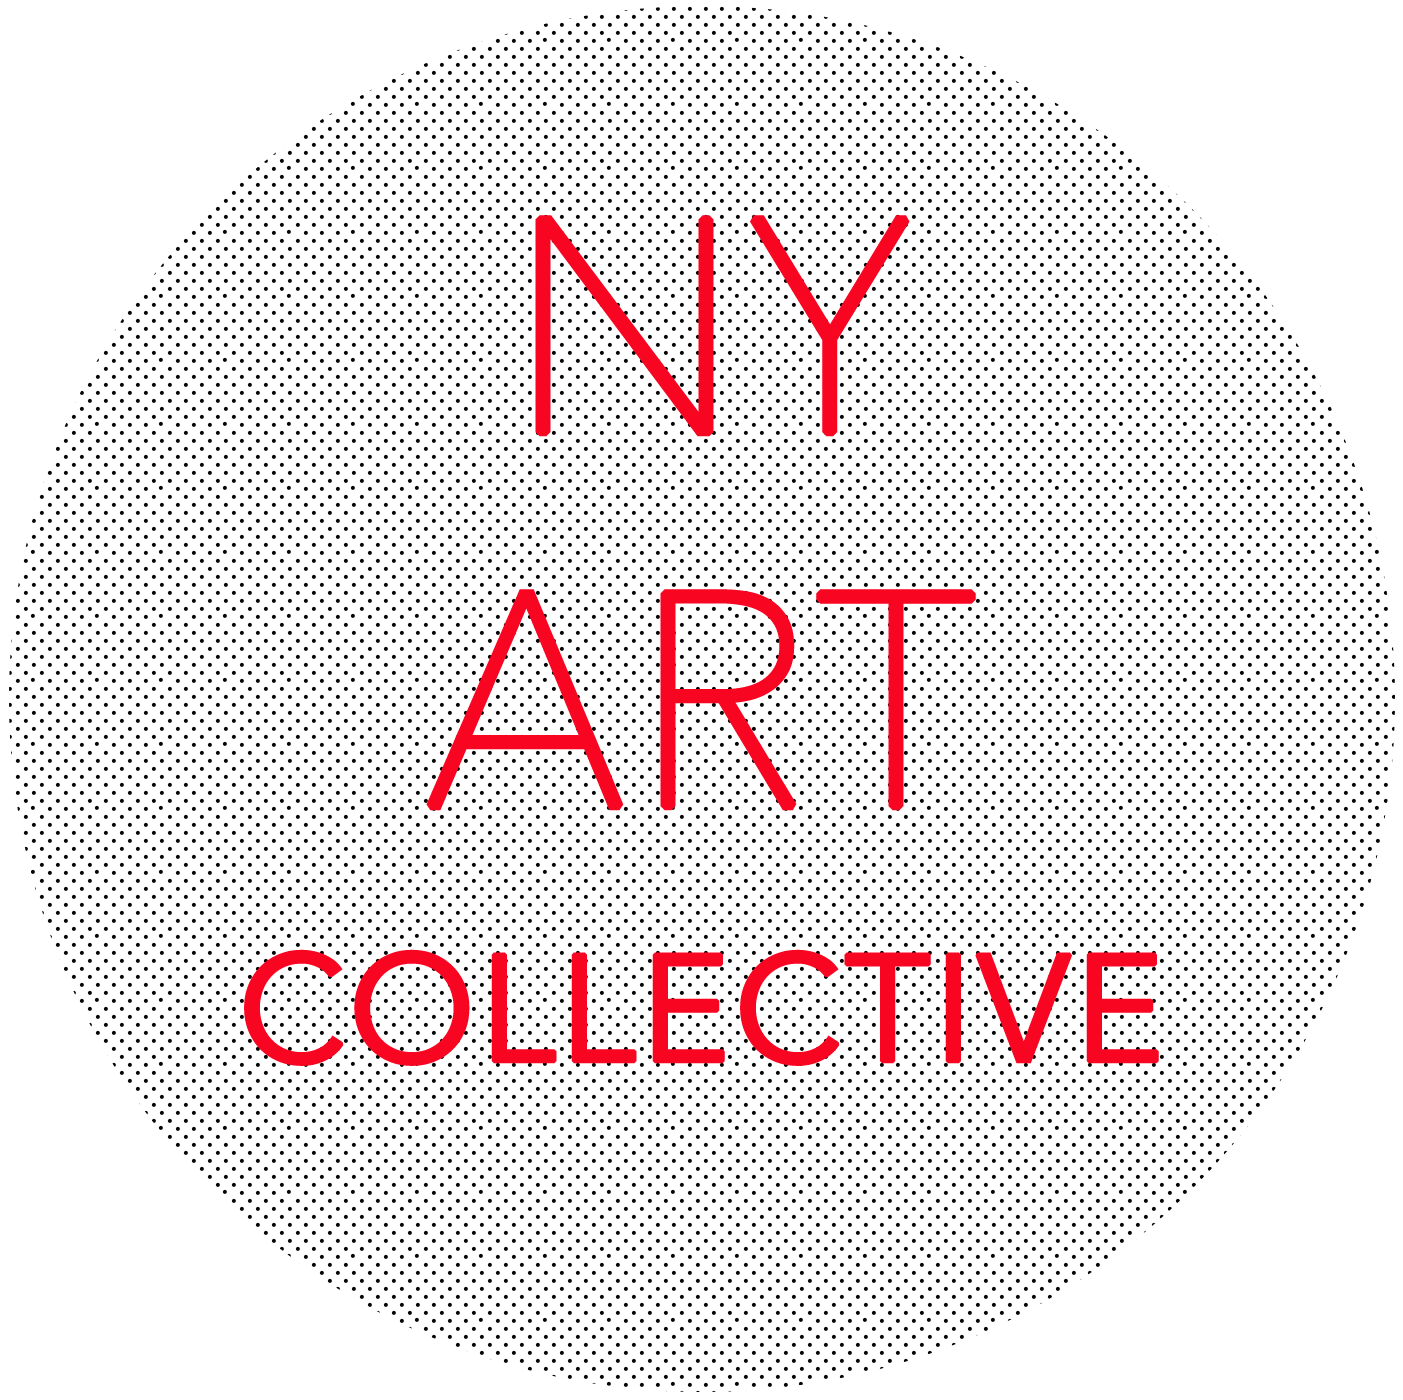 NY ART COLLECTIVE